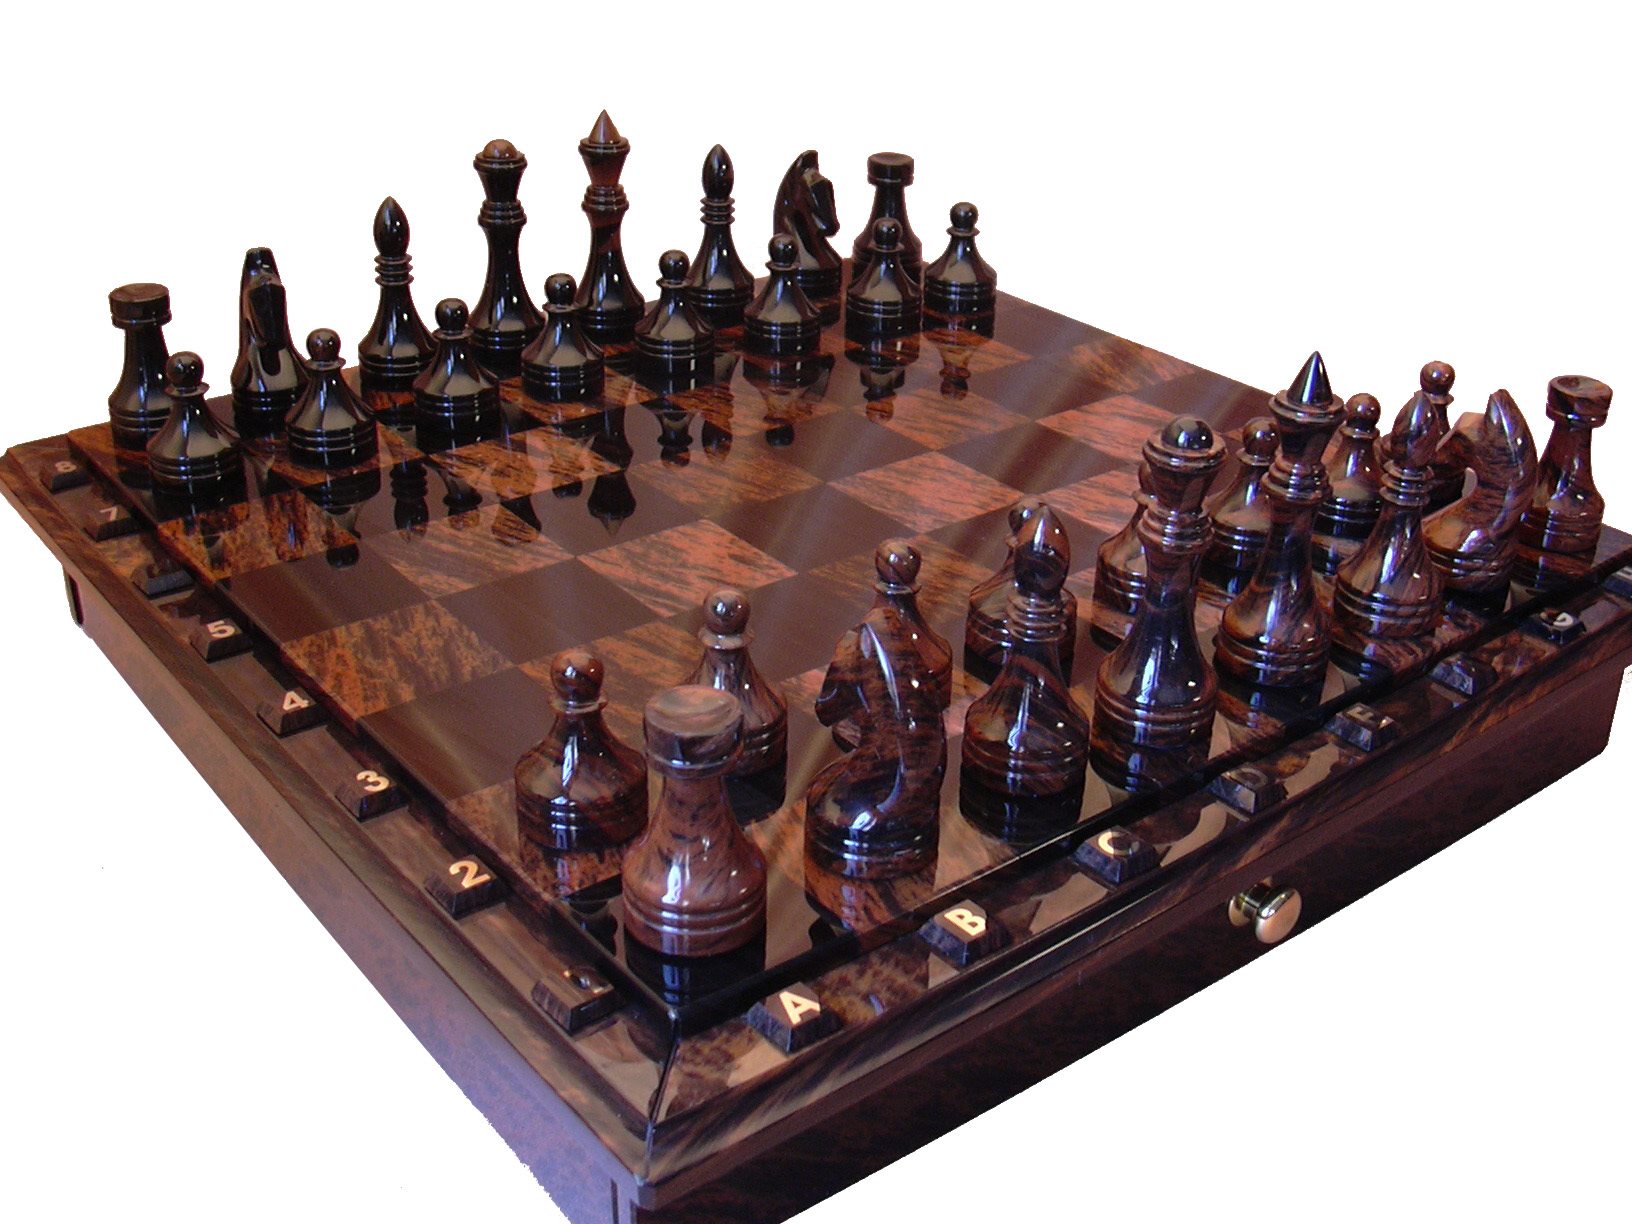 Chess backgammon handmade chess set 116 102 obsidian natural stone - Granite chess pieces ...